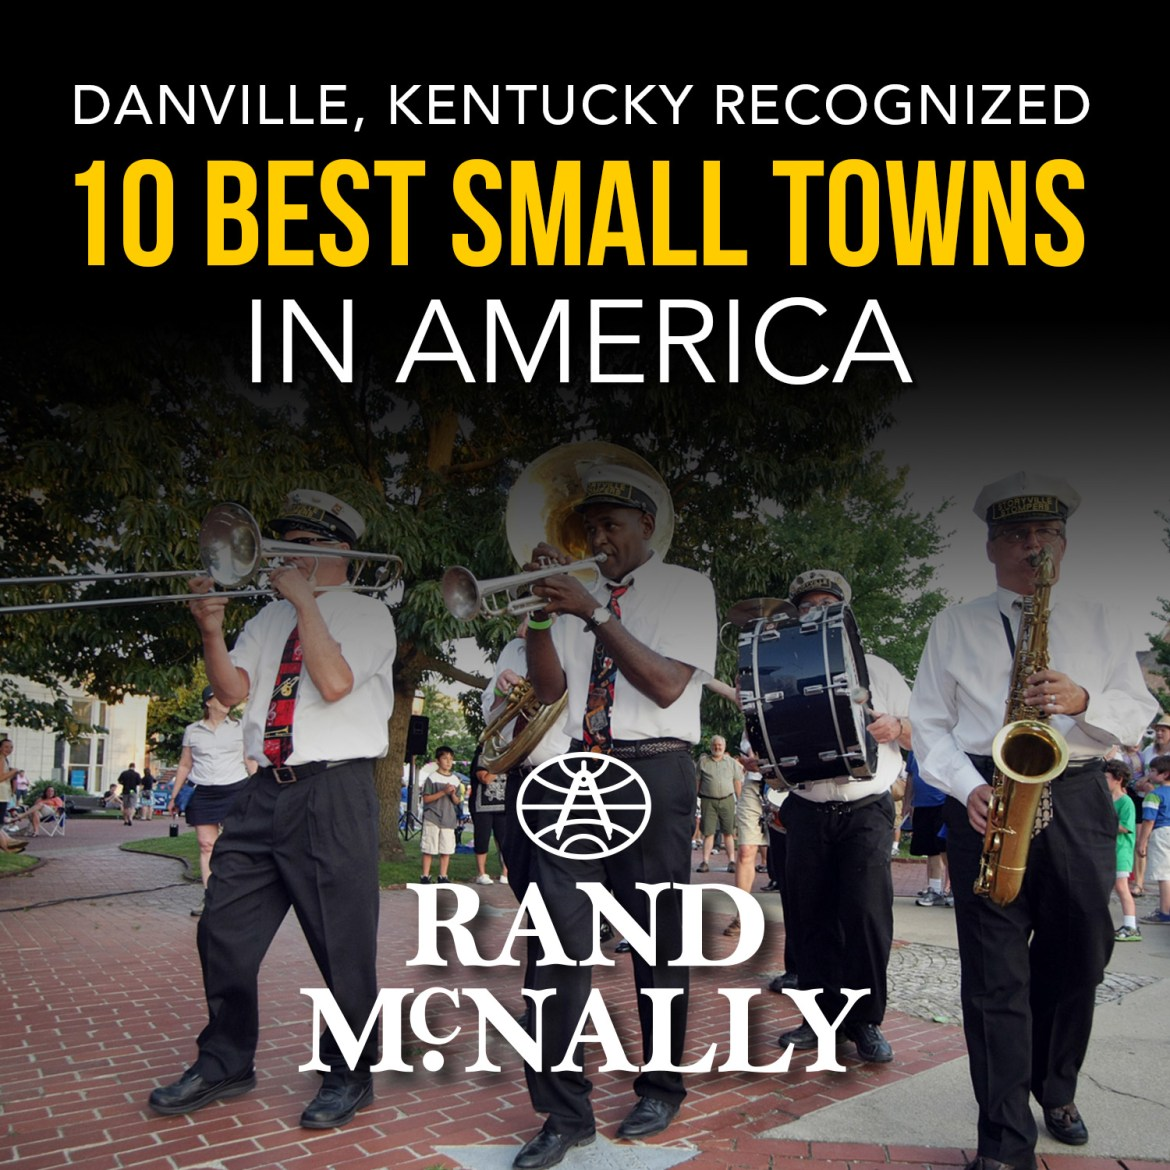 (infographic) Danville named 10 best small towns in America